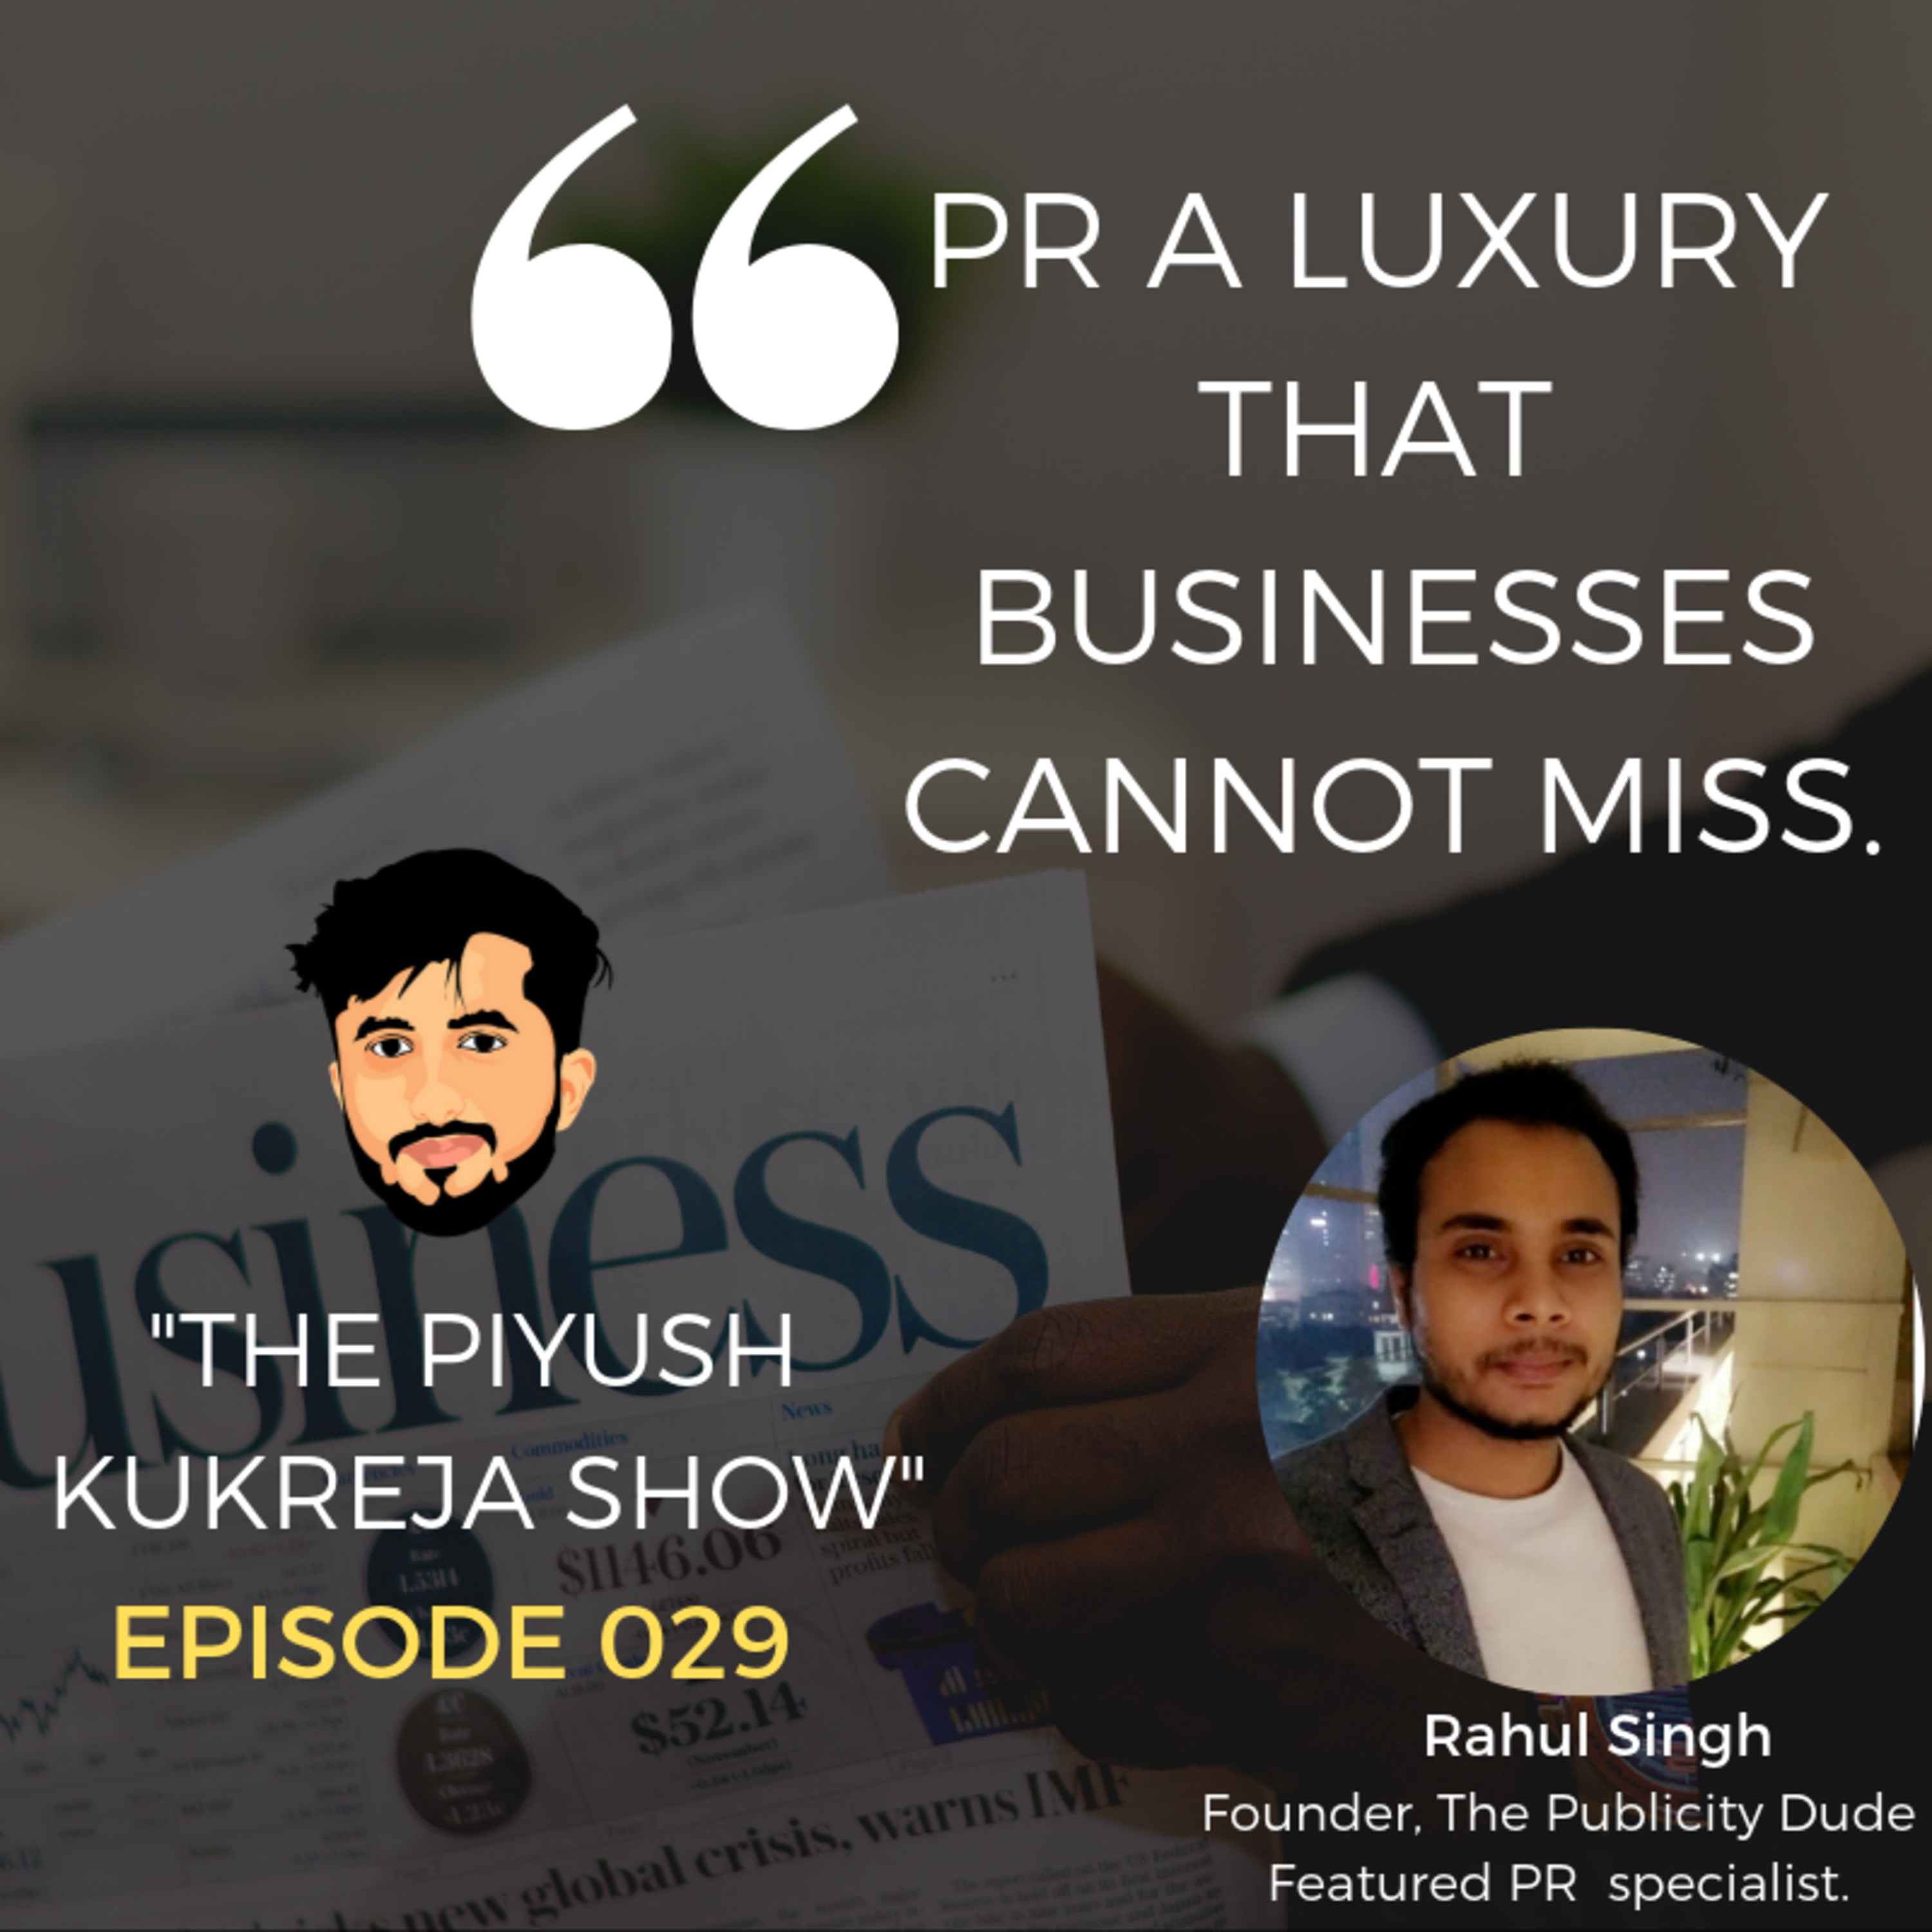 PR A LUXURY THAT BUSINESSES CANNOT MISS Ft. Rahul Singh #E029